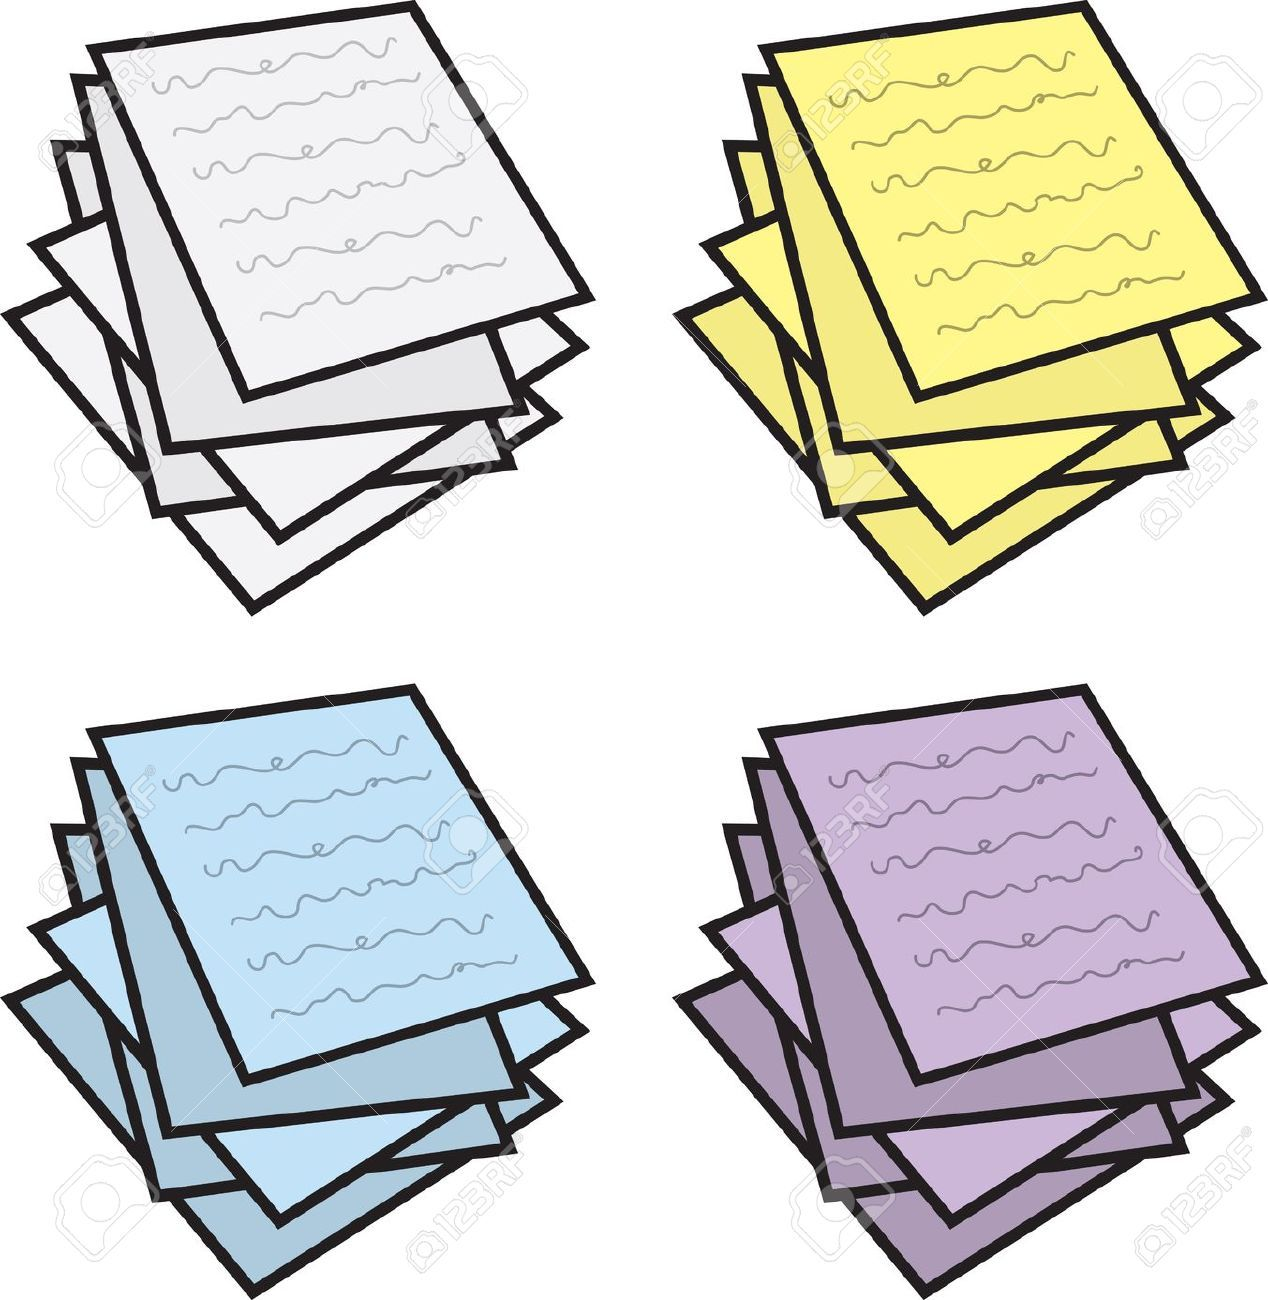 Paper pile clipart jpg library library Paper pile clipart 2 » Clipart Portal jpg library library